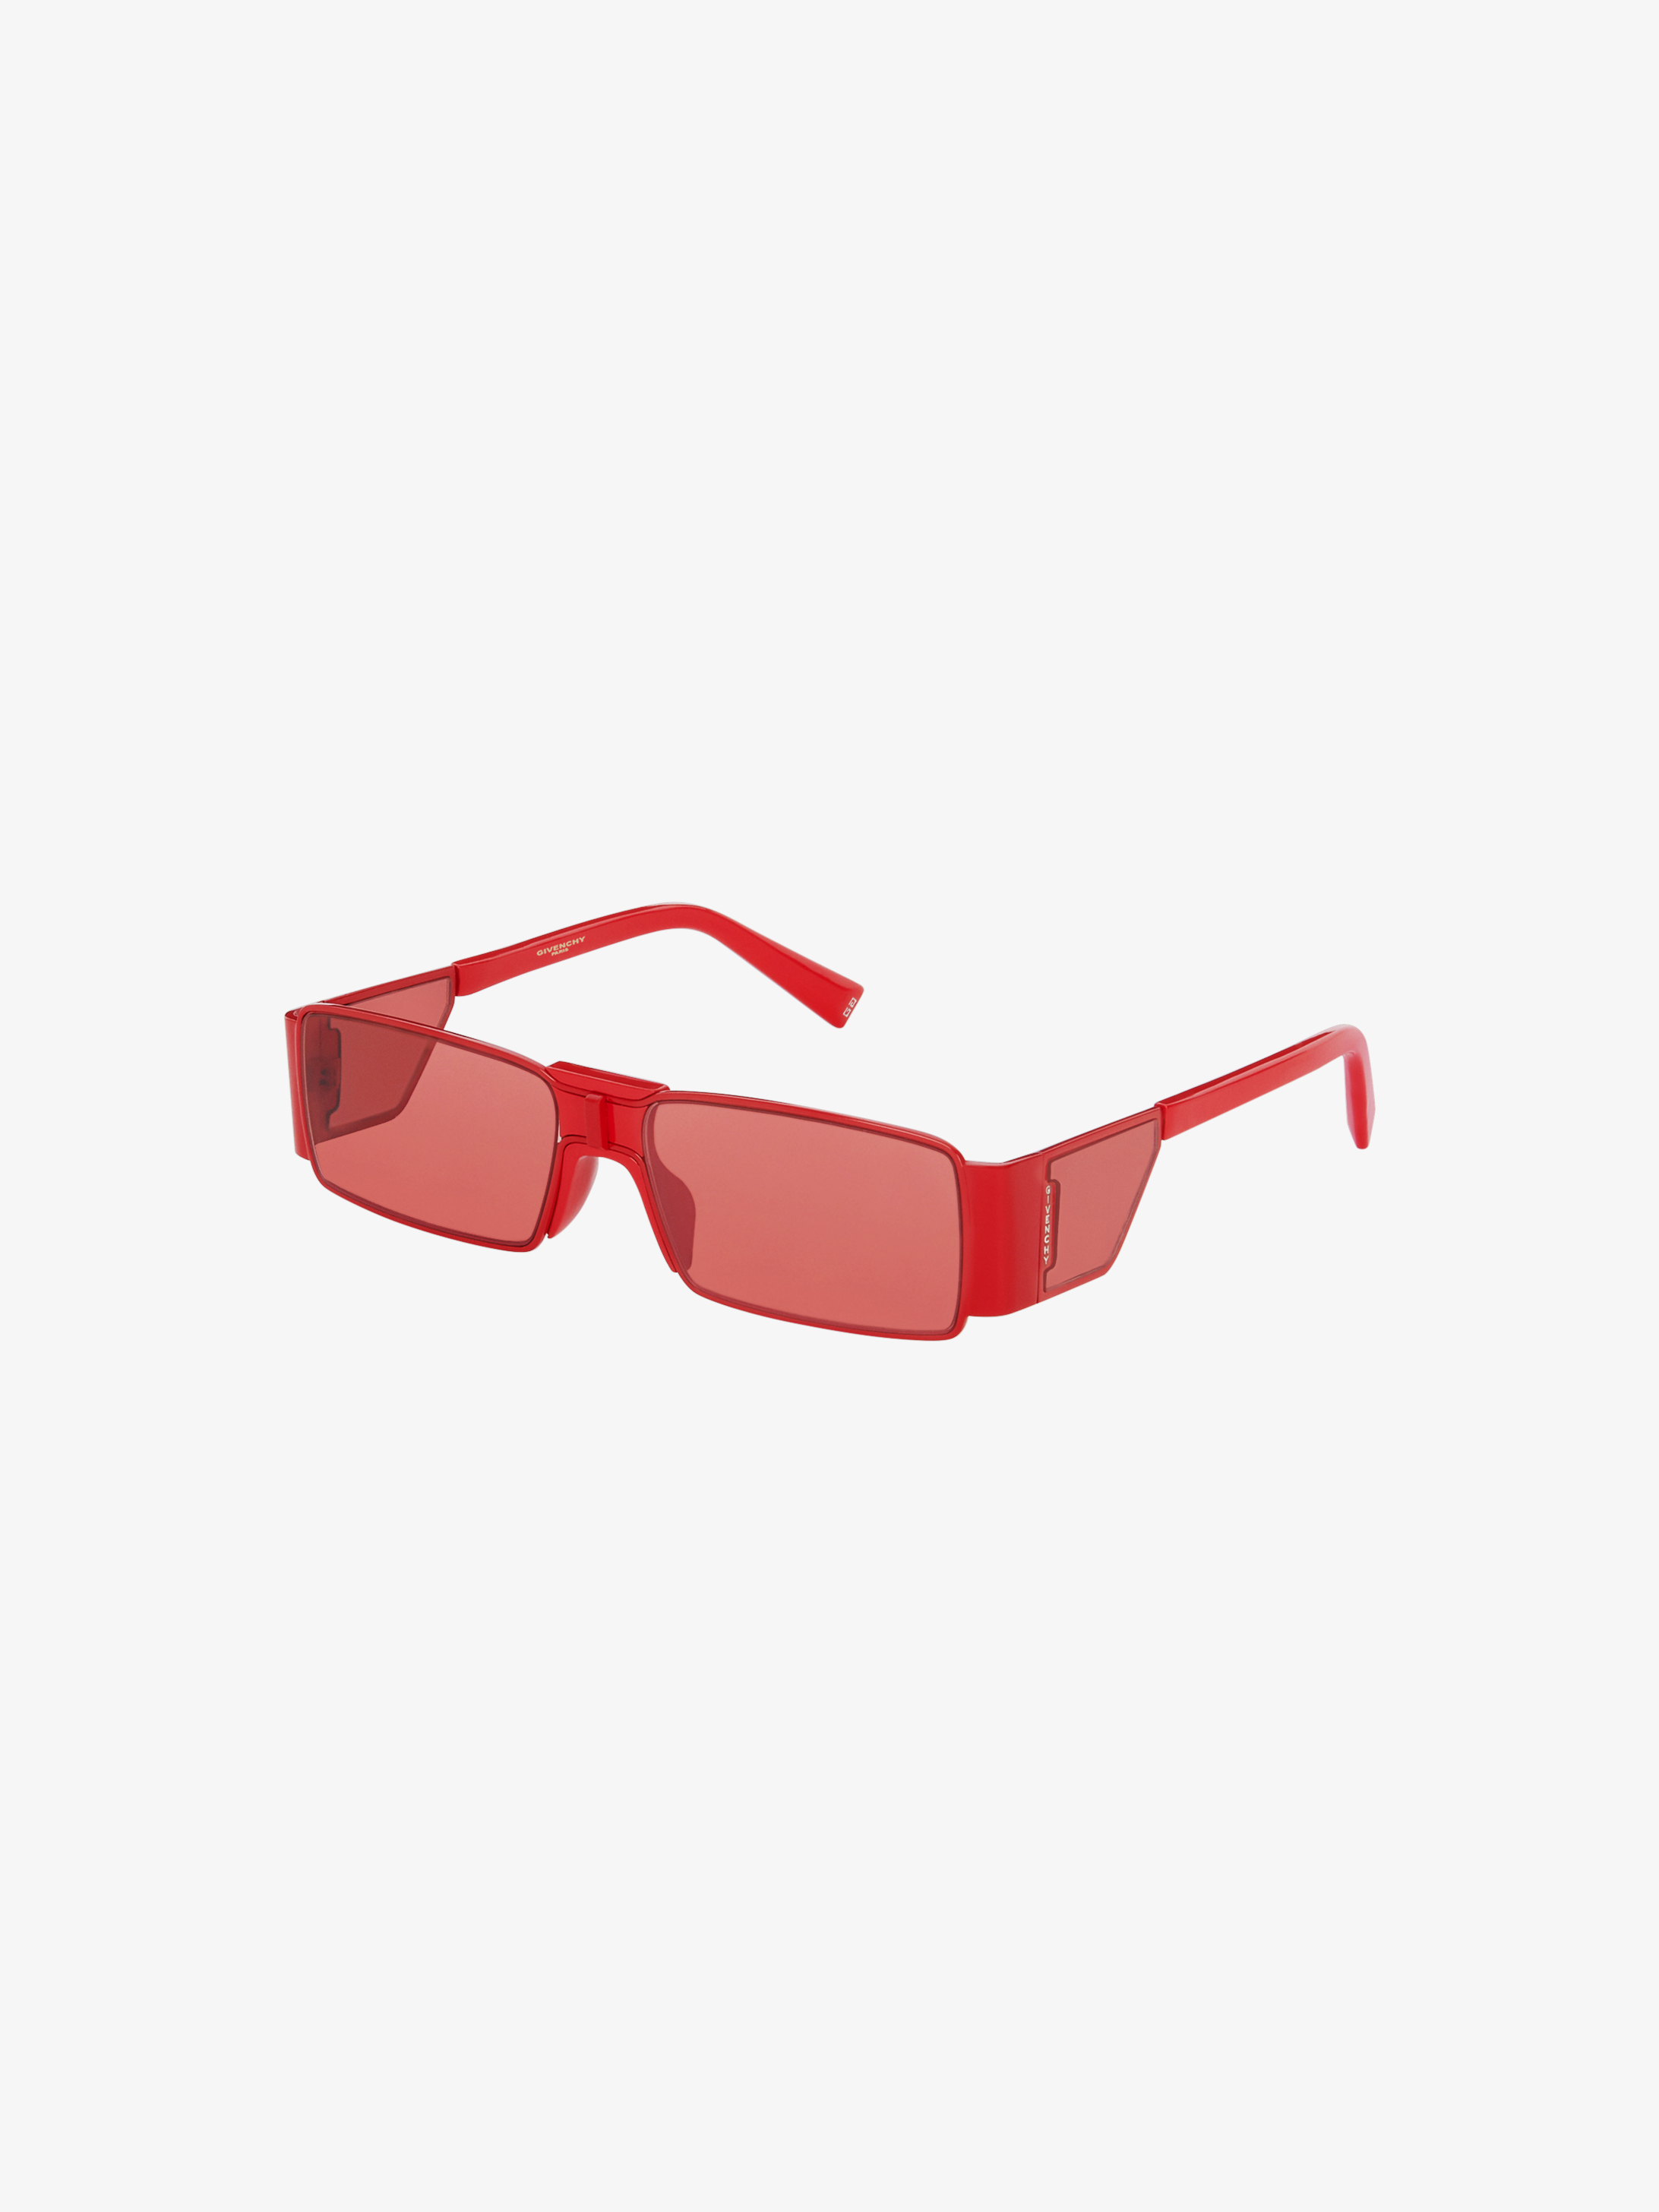 GV Vision sunglasses in metal and nylon